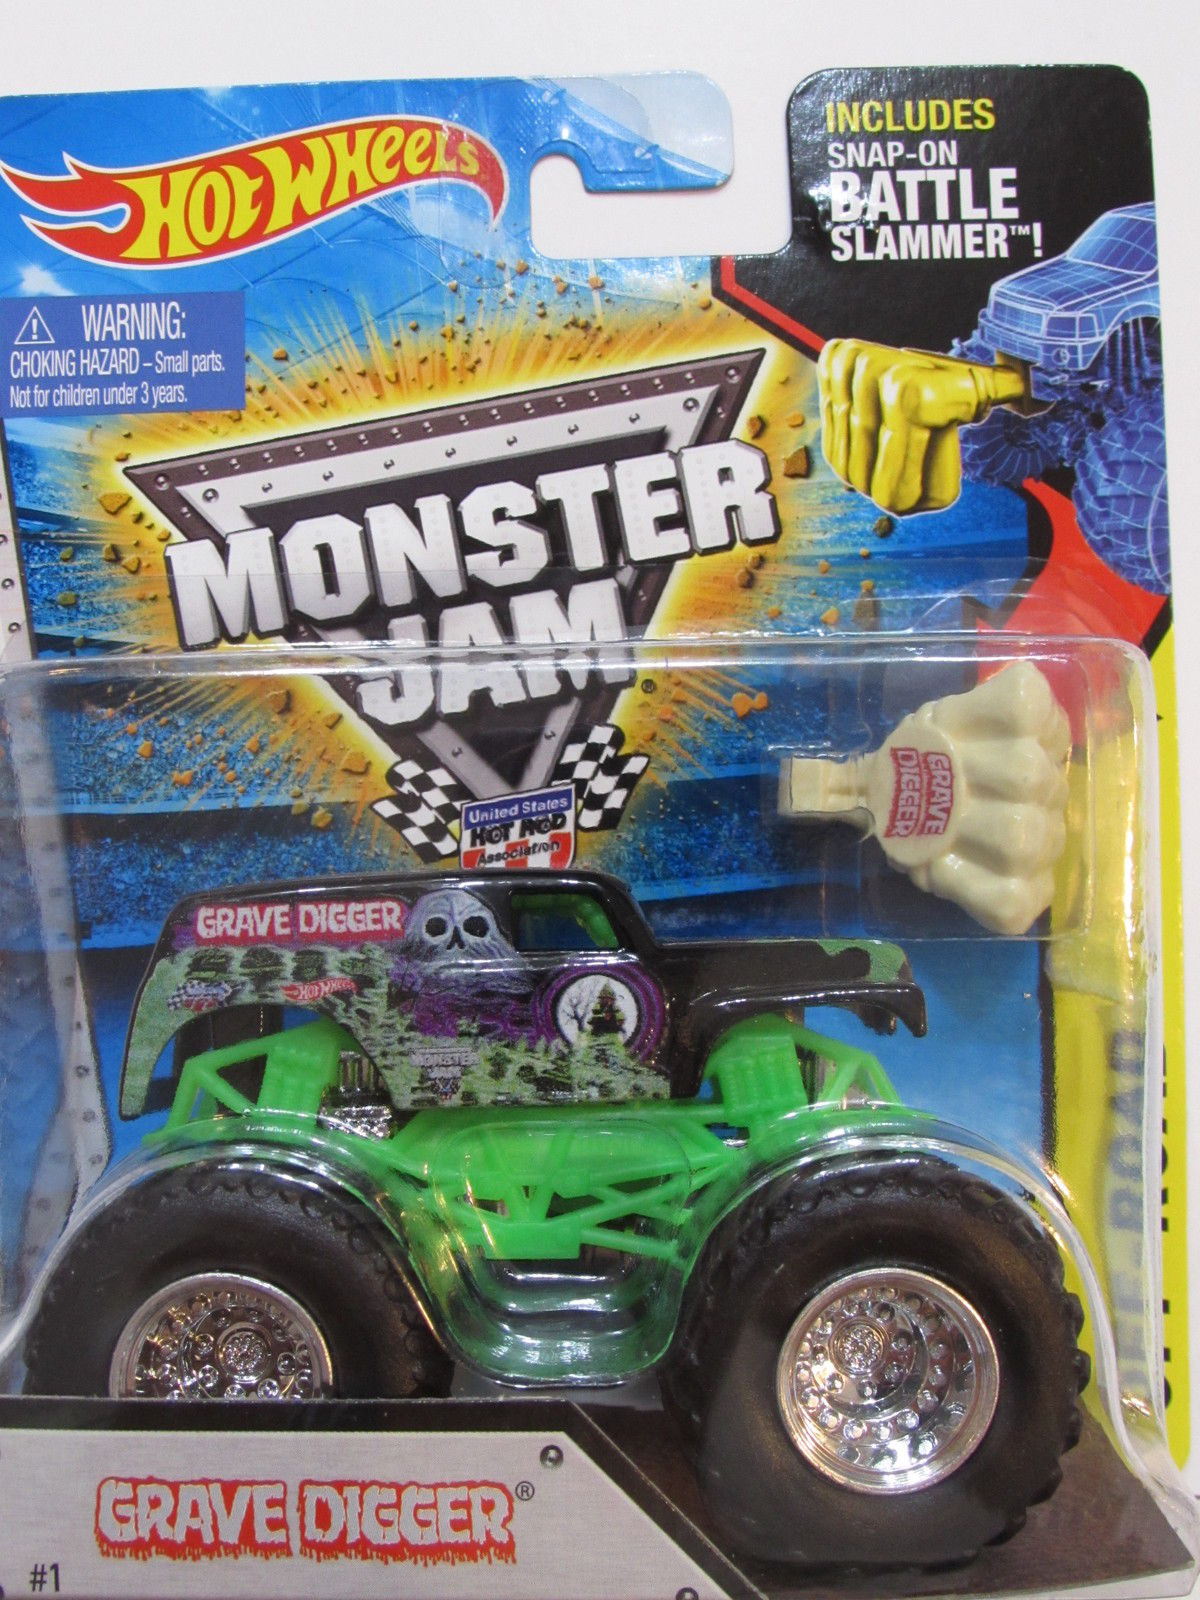 HOT WHEELS MONSTER JAM INCLUDES SNAP-ON BATTLE SLAMMER GRAVE DIGGER